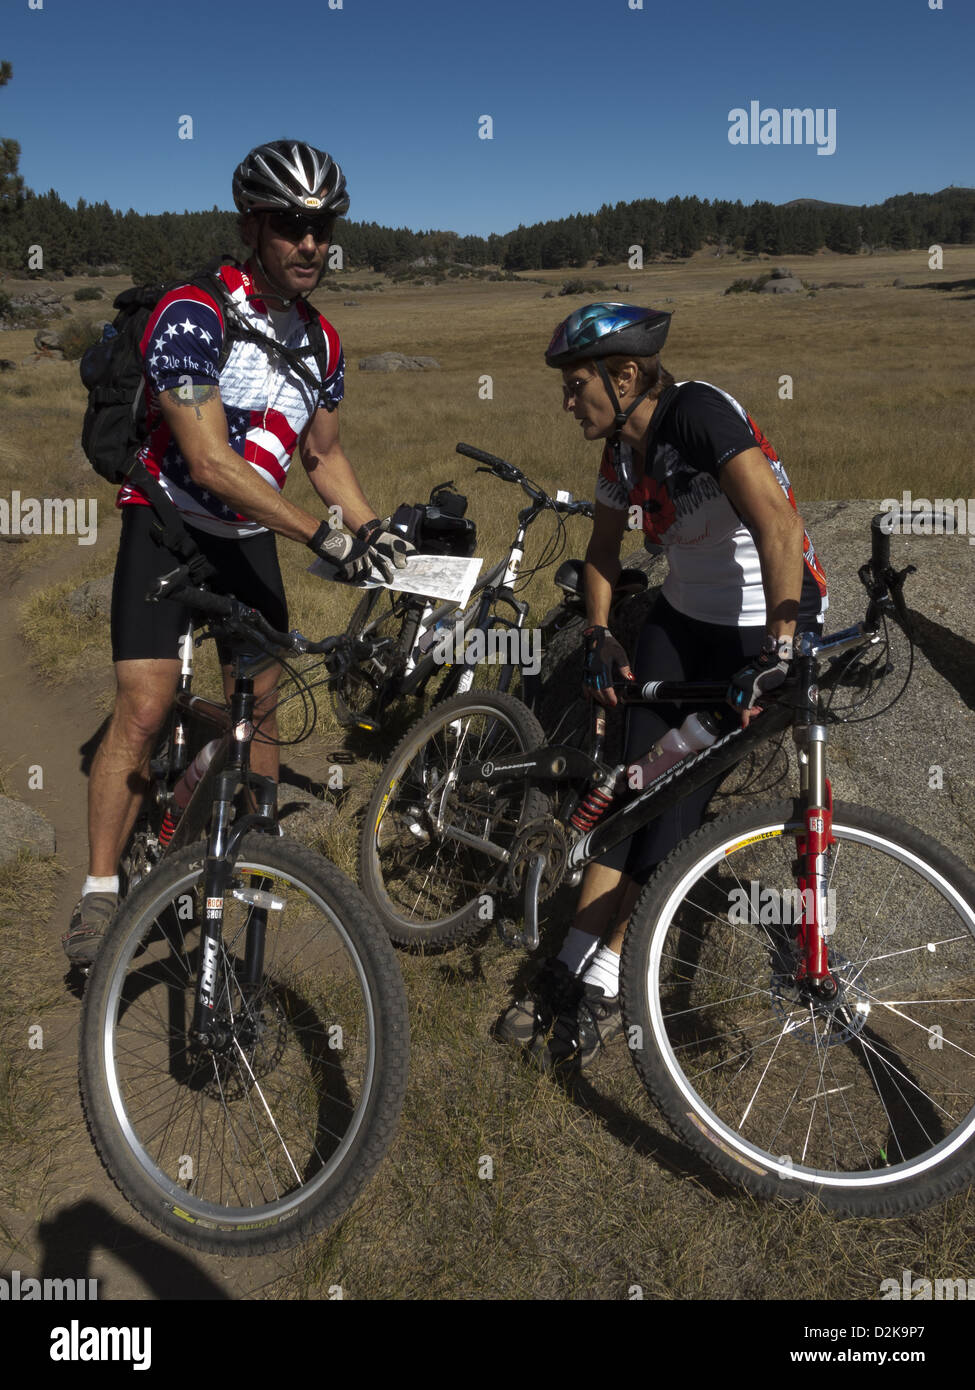 Two mountain bikers stopped and one needing a rest Mount Laguna california - Stock Image